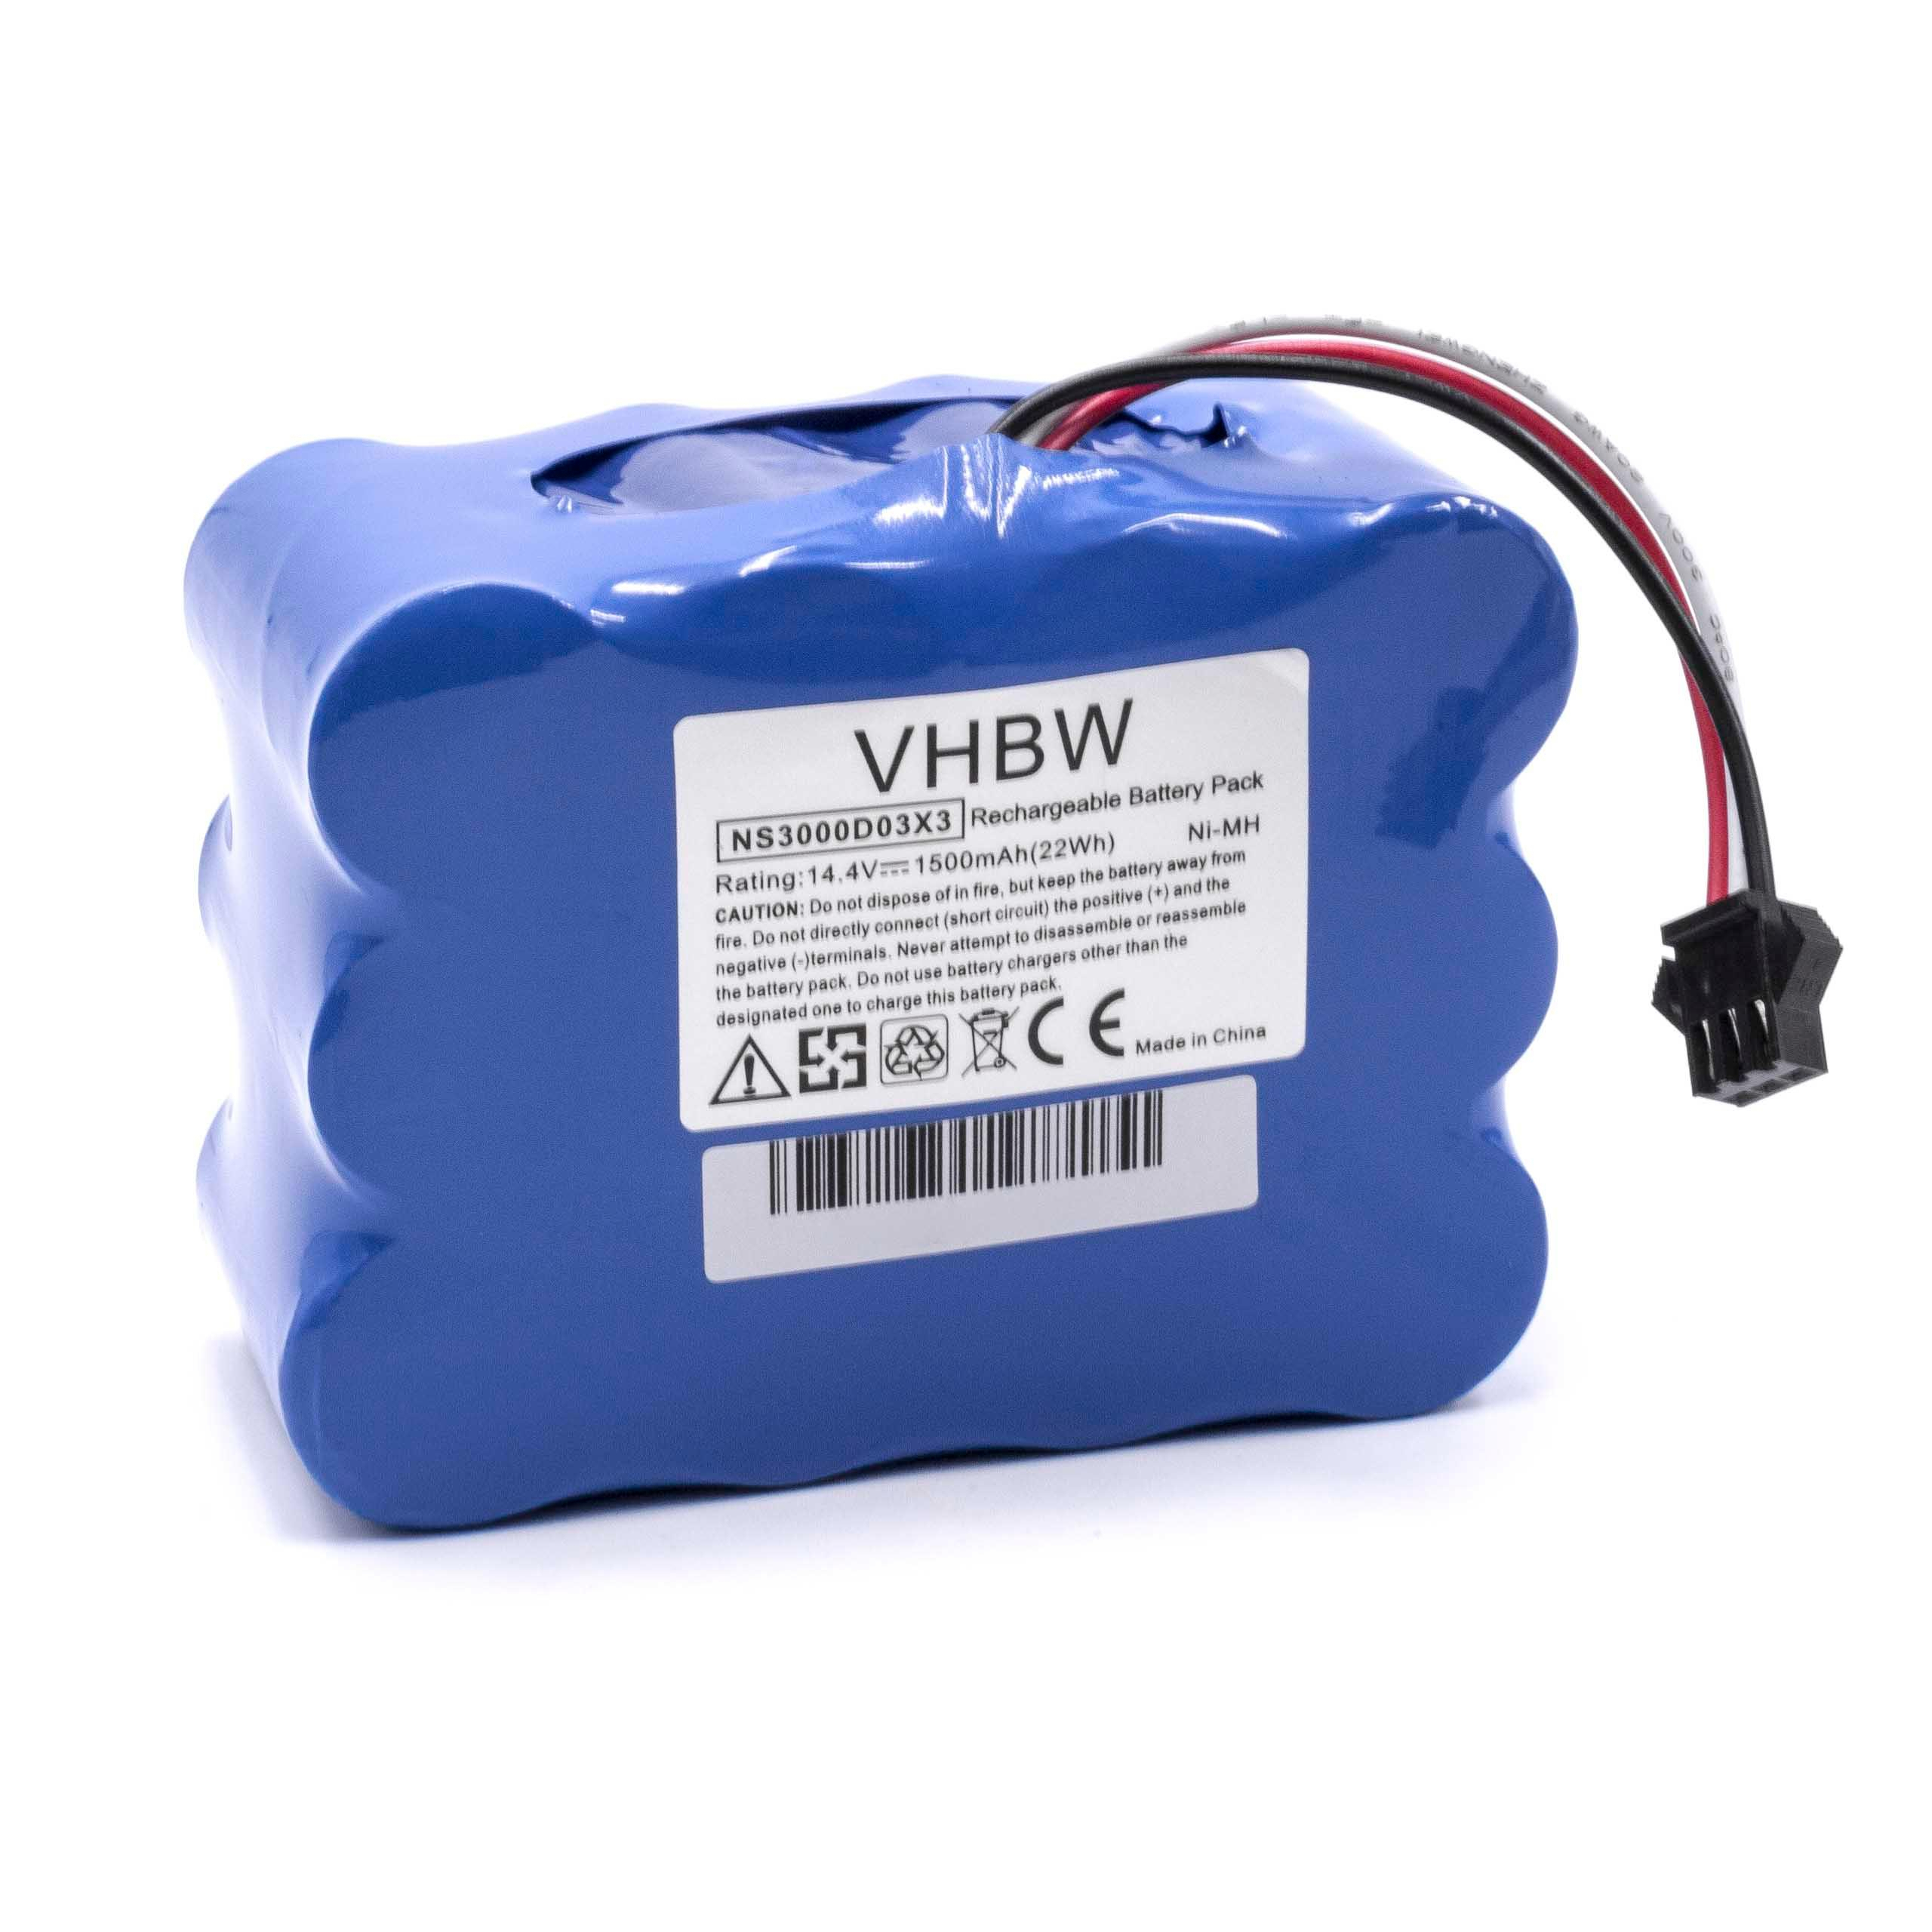 14.4V INTENSILO NiMH battery 4500mAh YX-Ni-MH-022144. for Home Cleaner Klarstein Cleantouch robotic vacuum cleaner replaces NS3000D03X3